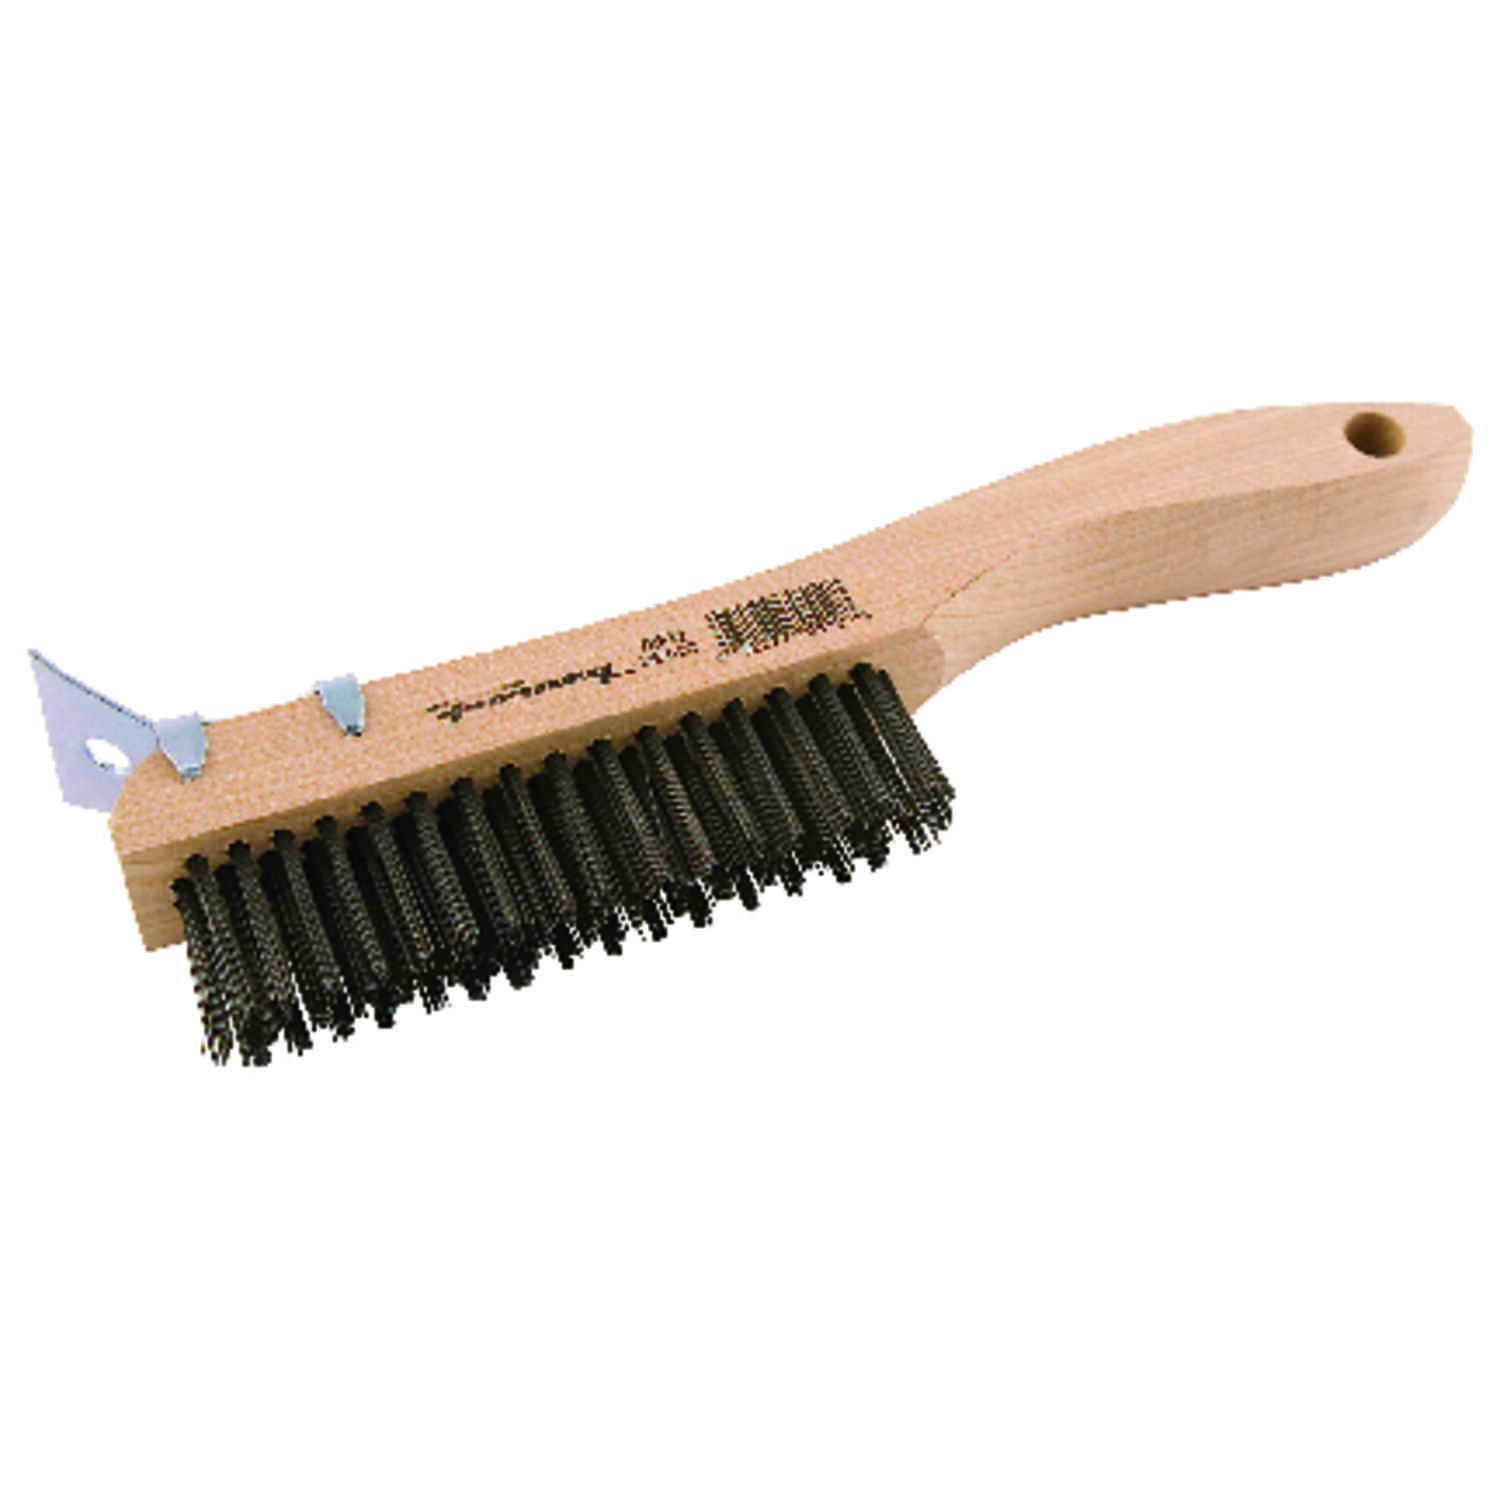 Forney  10-1/4 in. L x 2.75 in. W Scratch Brush  Wood  1 pc.